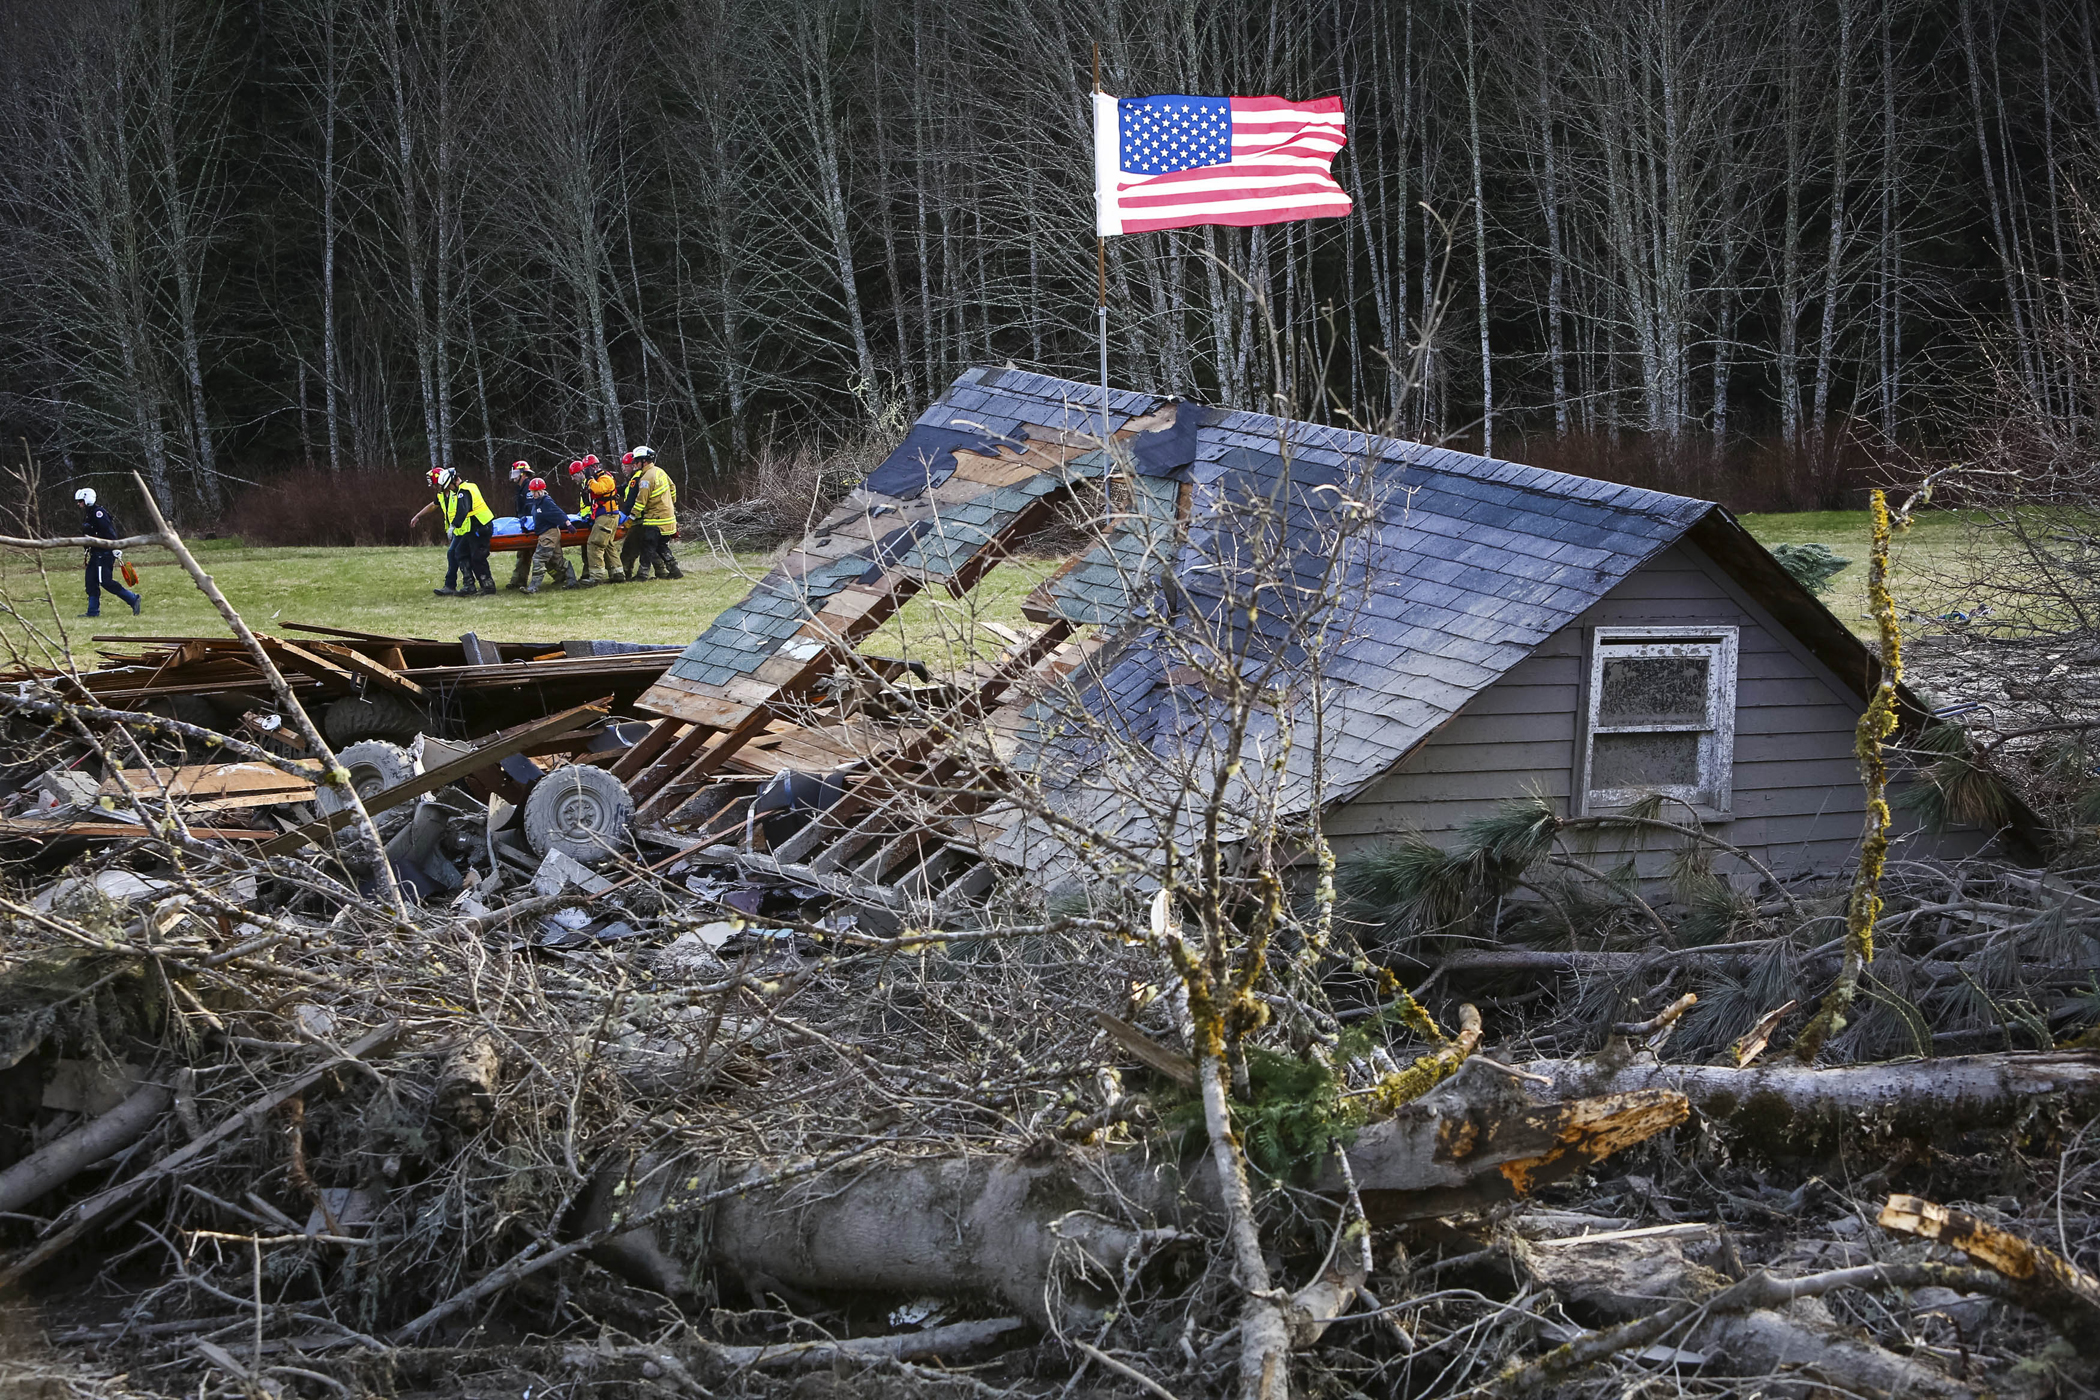 Rescue workers remove a body from the wreckage of homes destroyed by a mudslide near Oso, Wash, Monday, March 24, 2014.